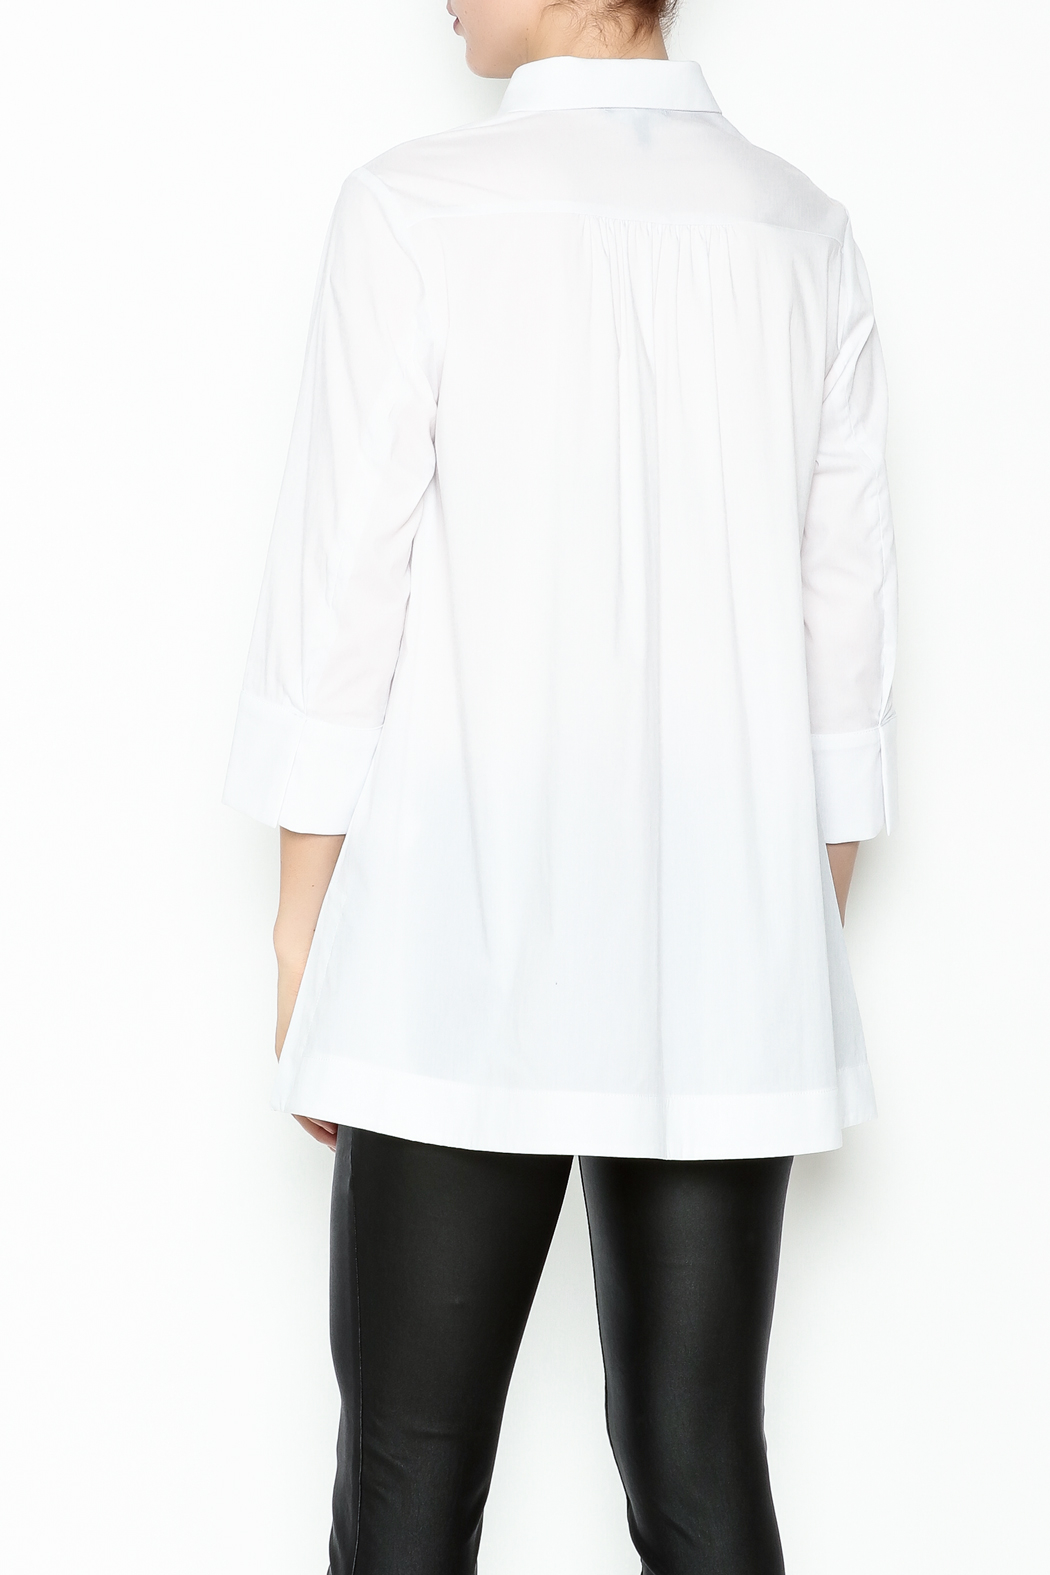 Comfy USA Collared Button Up Shirt - Back Cropped Image